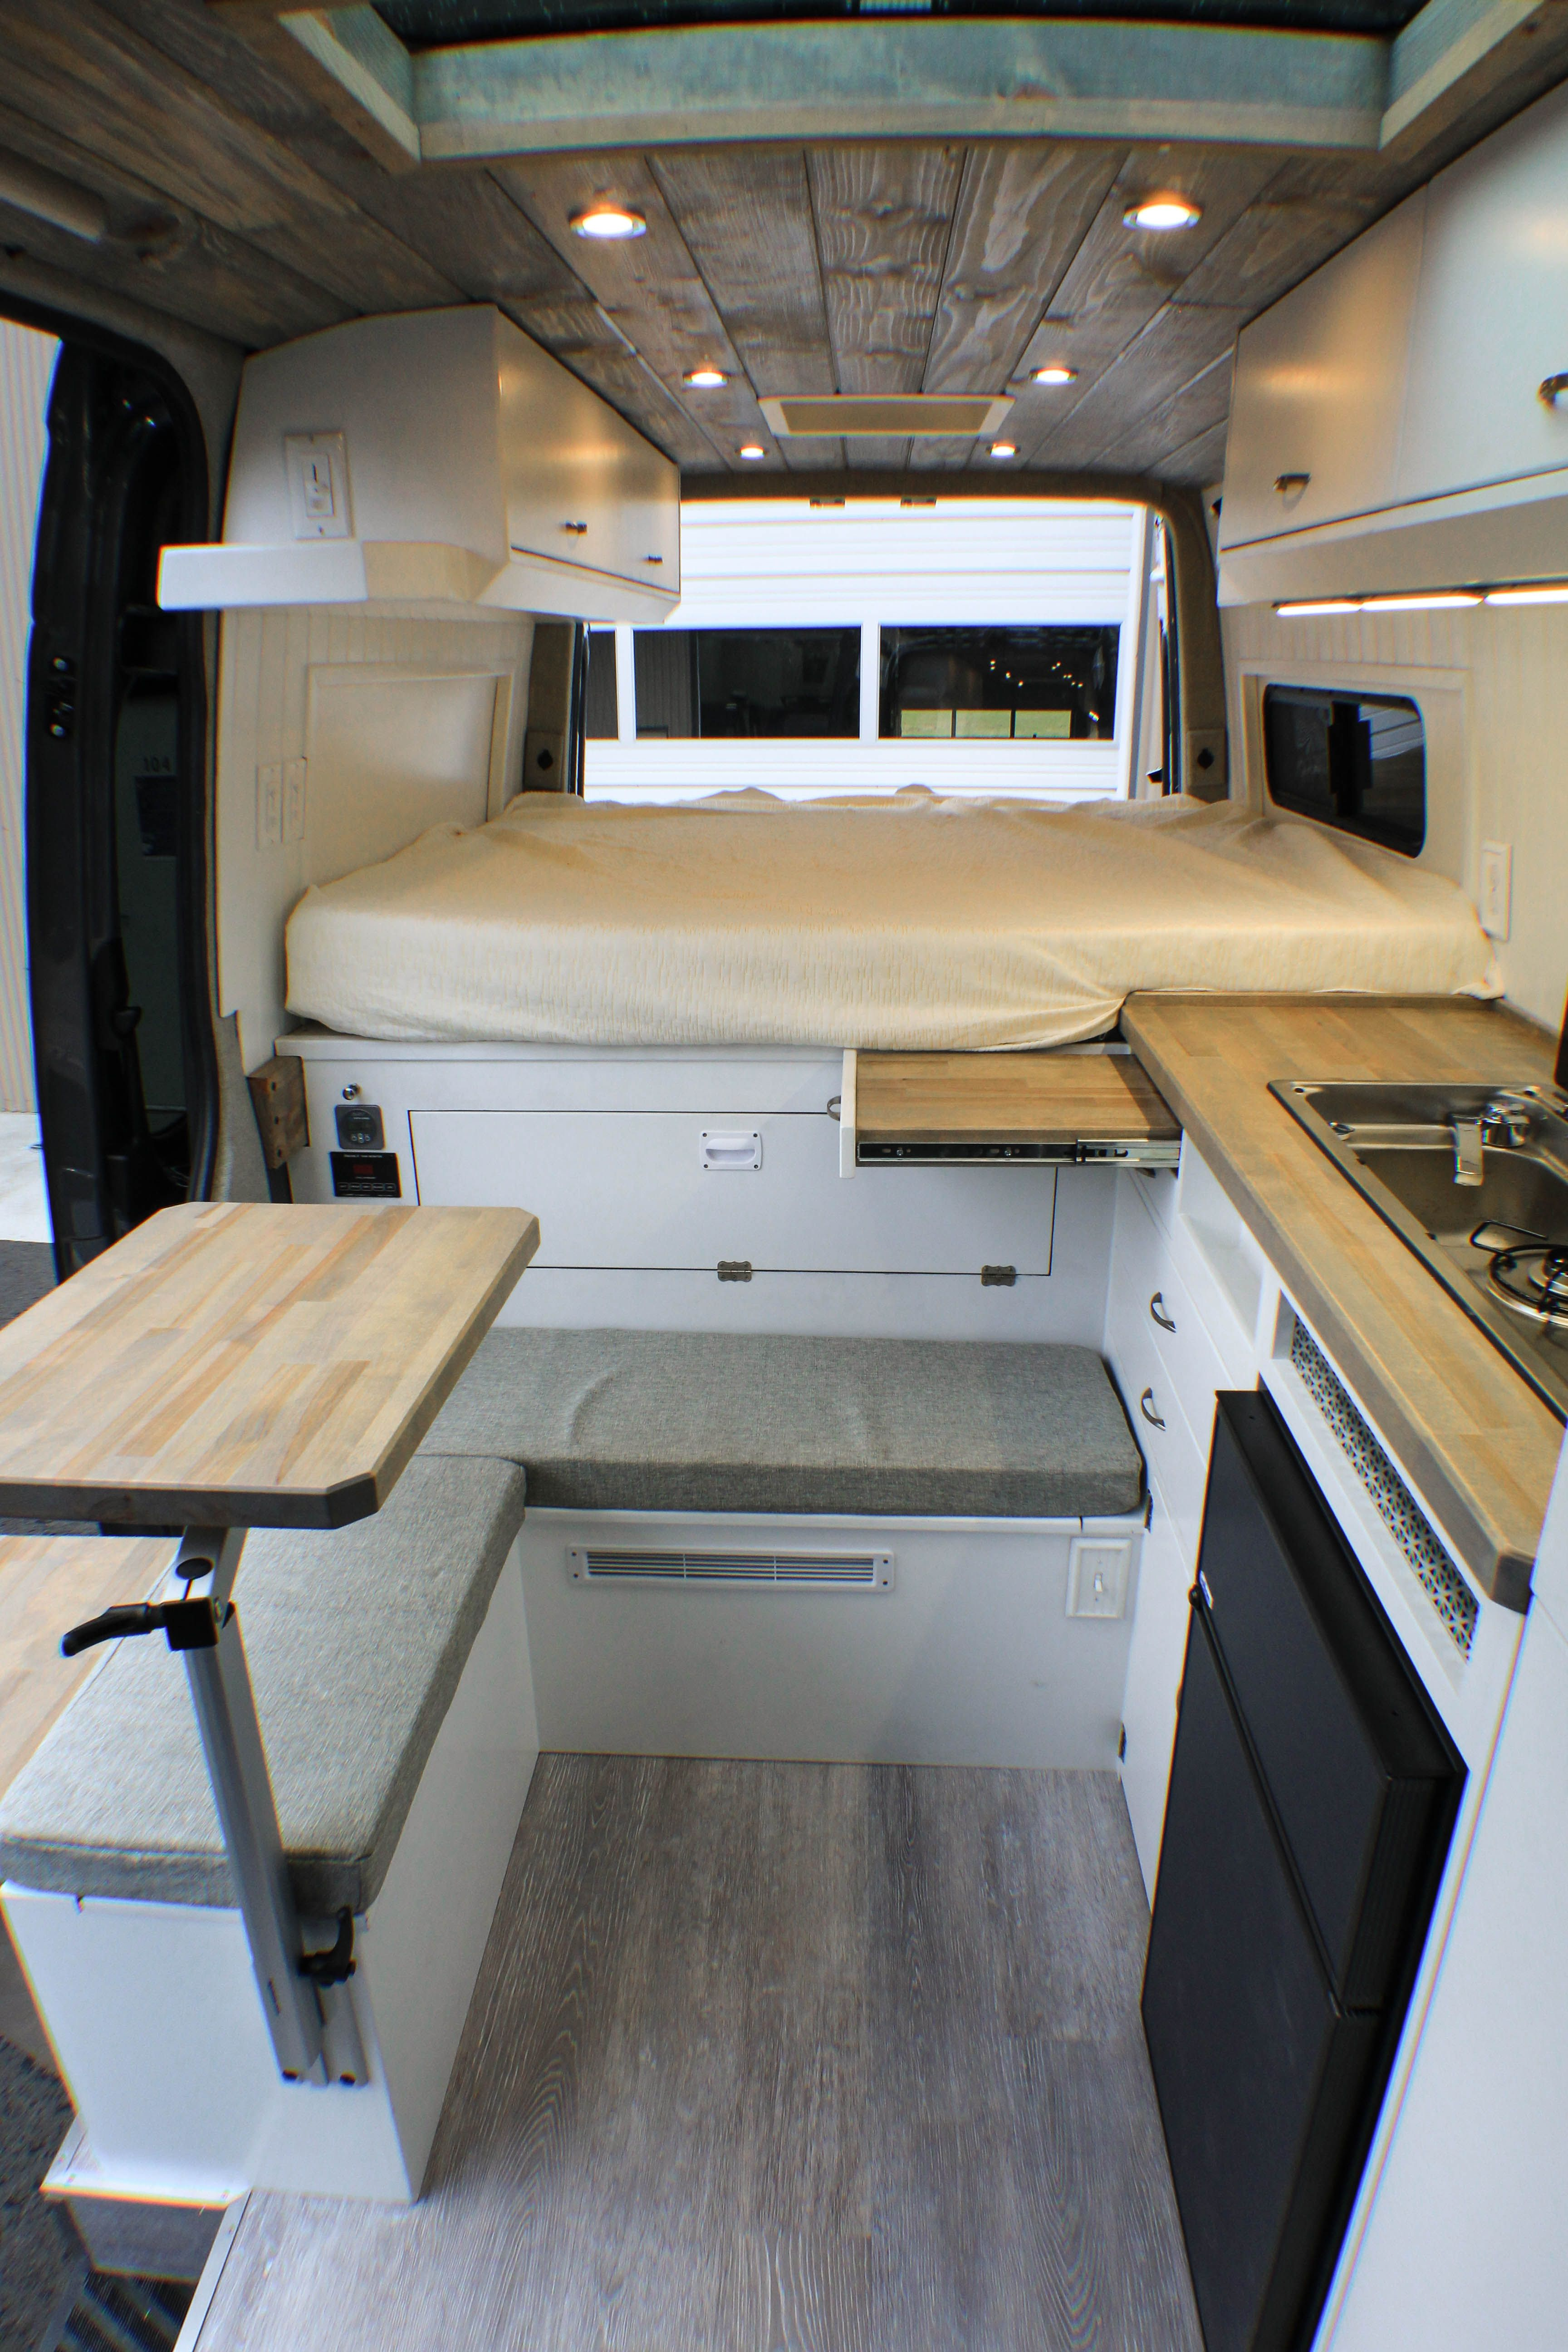 Germaine Was Built For An Australian Couple That Relocated To The United States And Wanted A Freedom Van That Would Van Conversion Interior Van Life Van Home